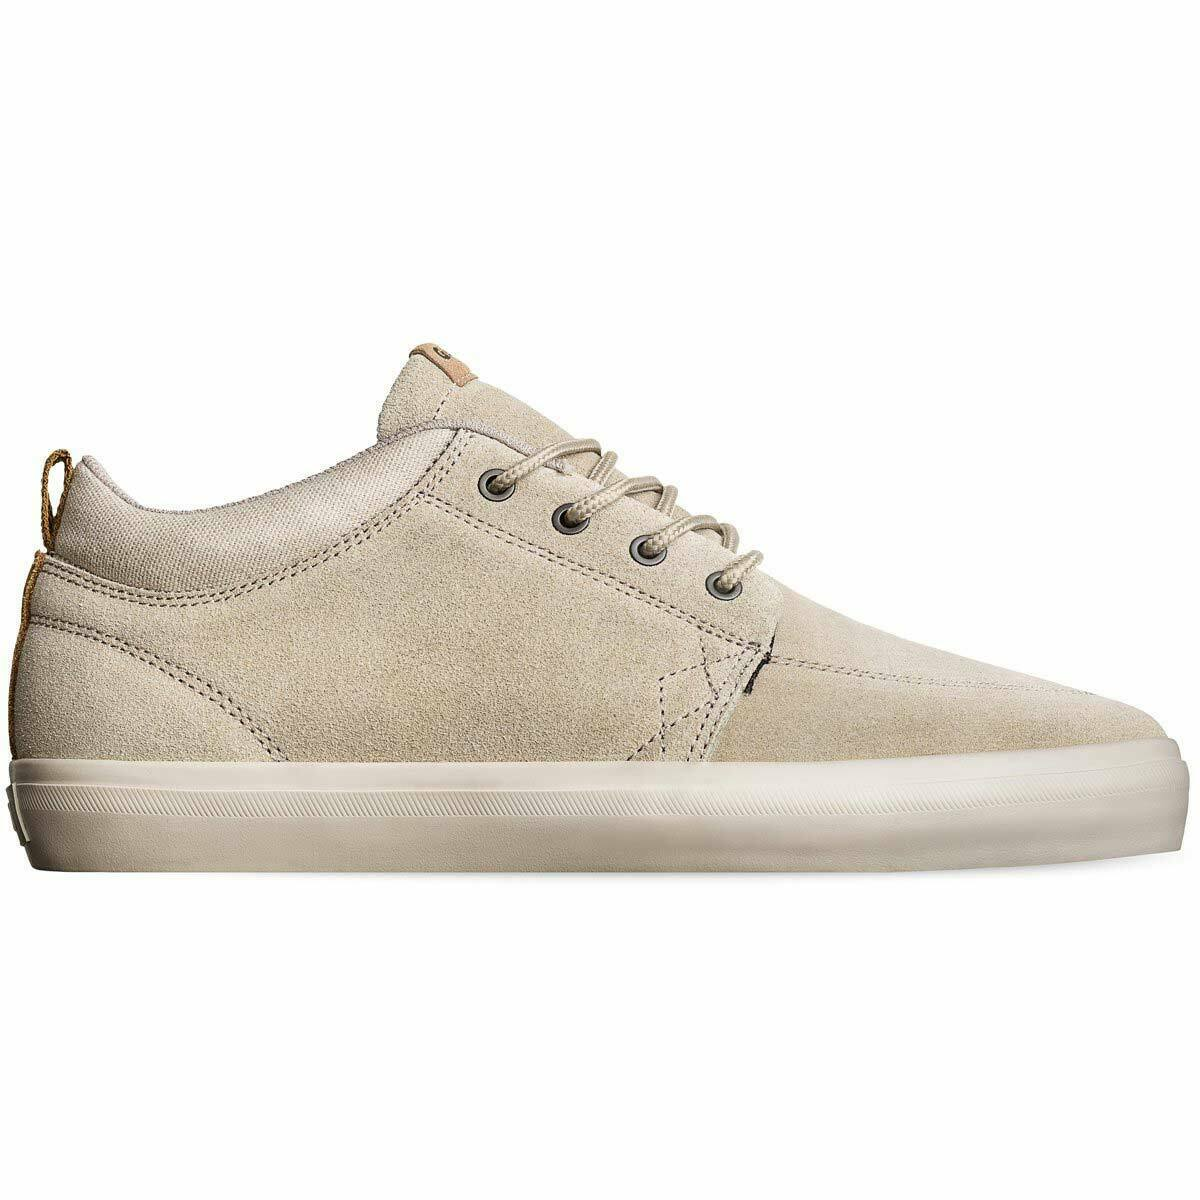 Globe GS Chukka  S  shoes, Taupe  authentic quality